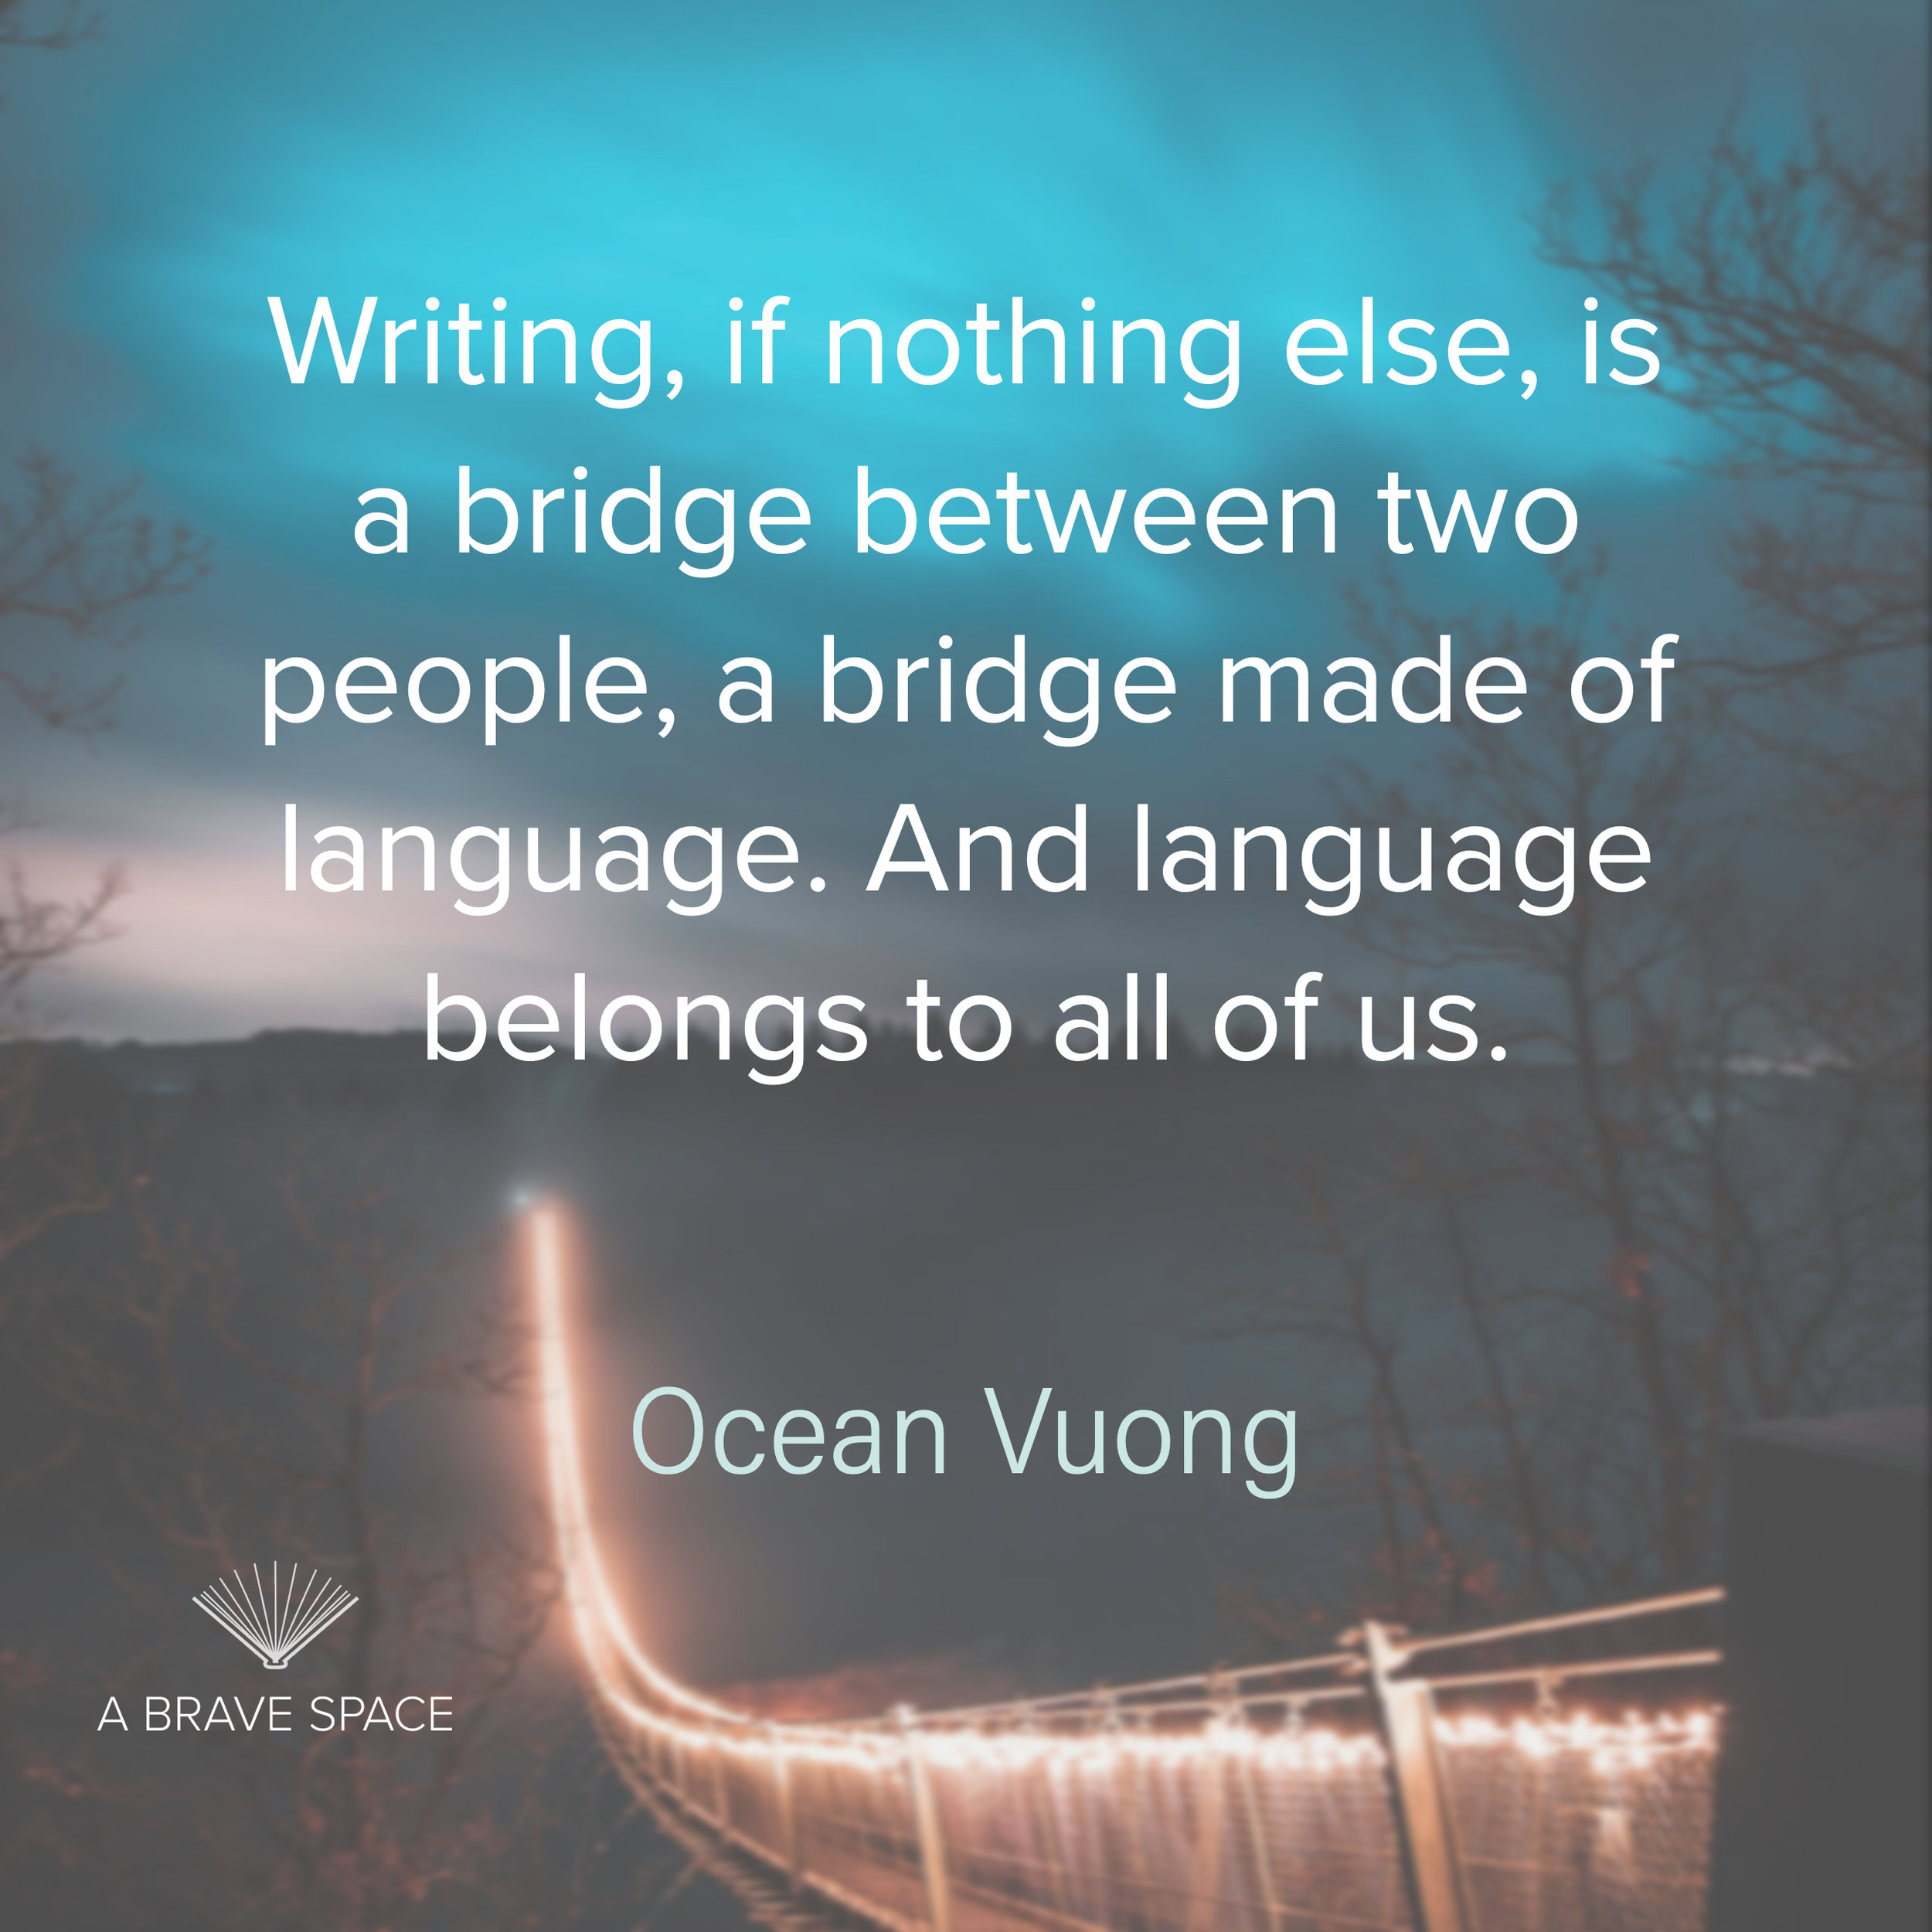 Writing, if nothing else, is a bridge between two people, a bridge made of language. And language belongs to all of us. Ocean Vuong